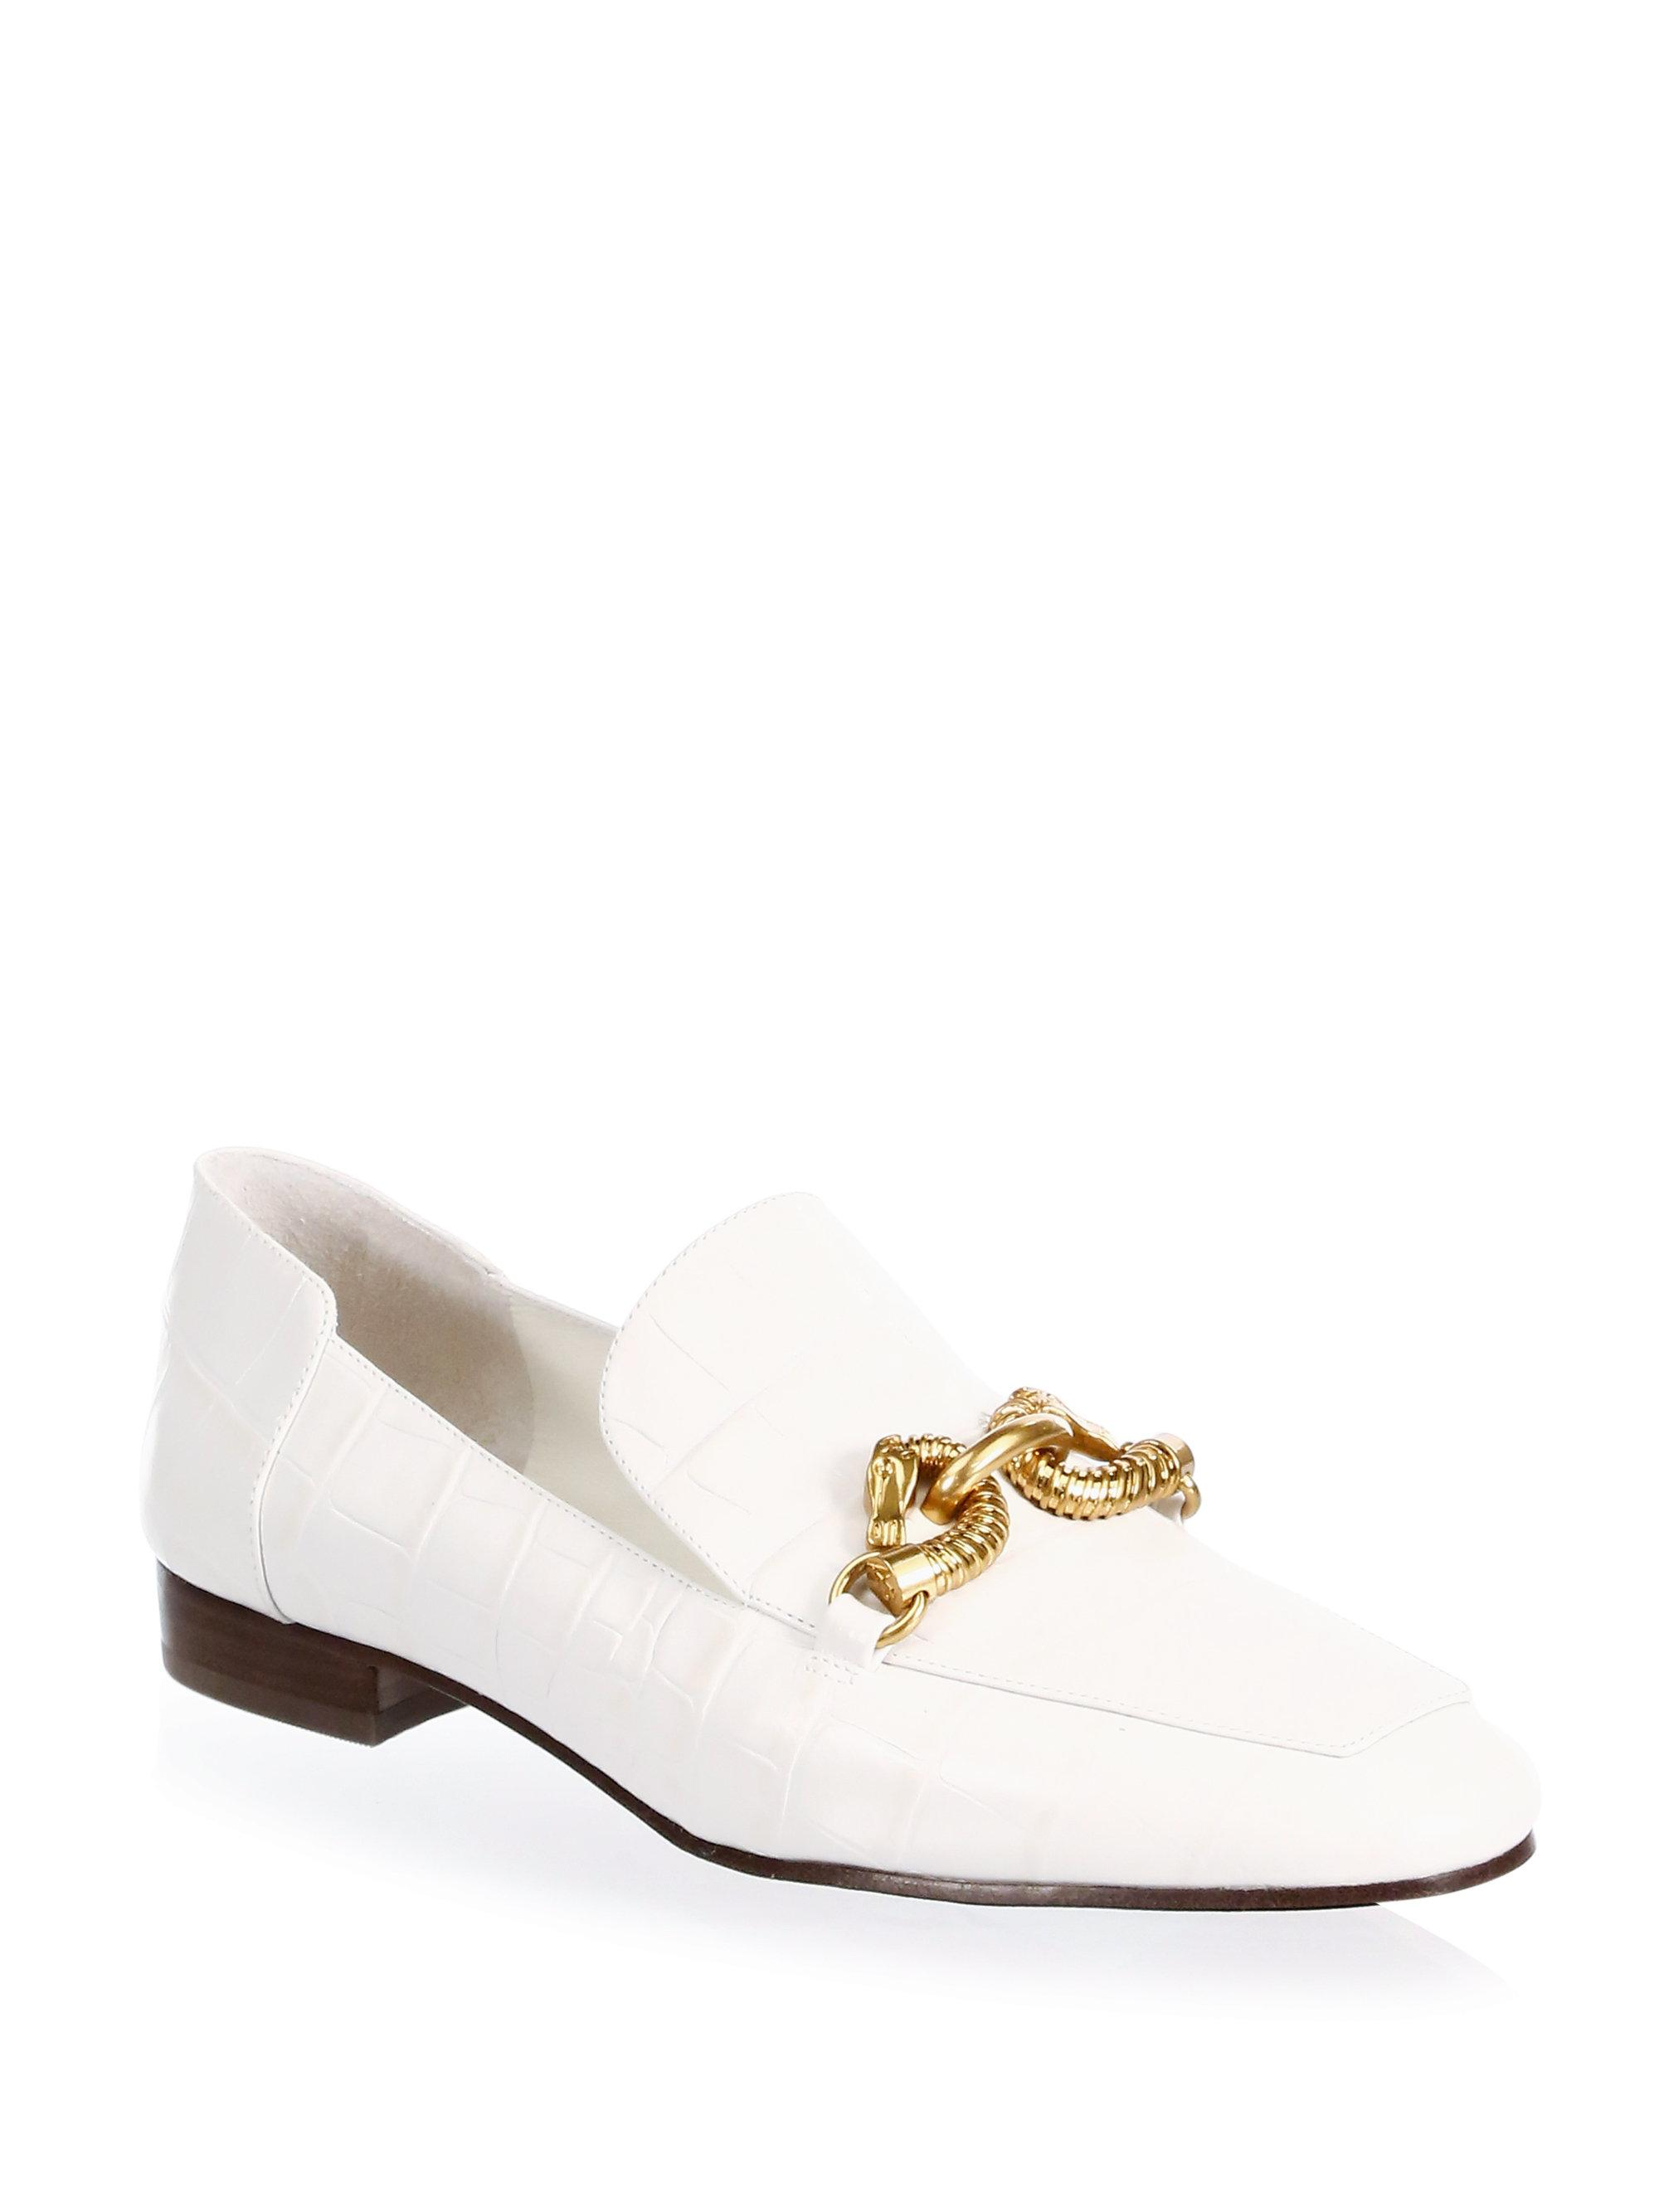 6cba716e7 Lyst - Tory Burch Jessa Leather Loafers in White